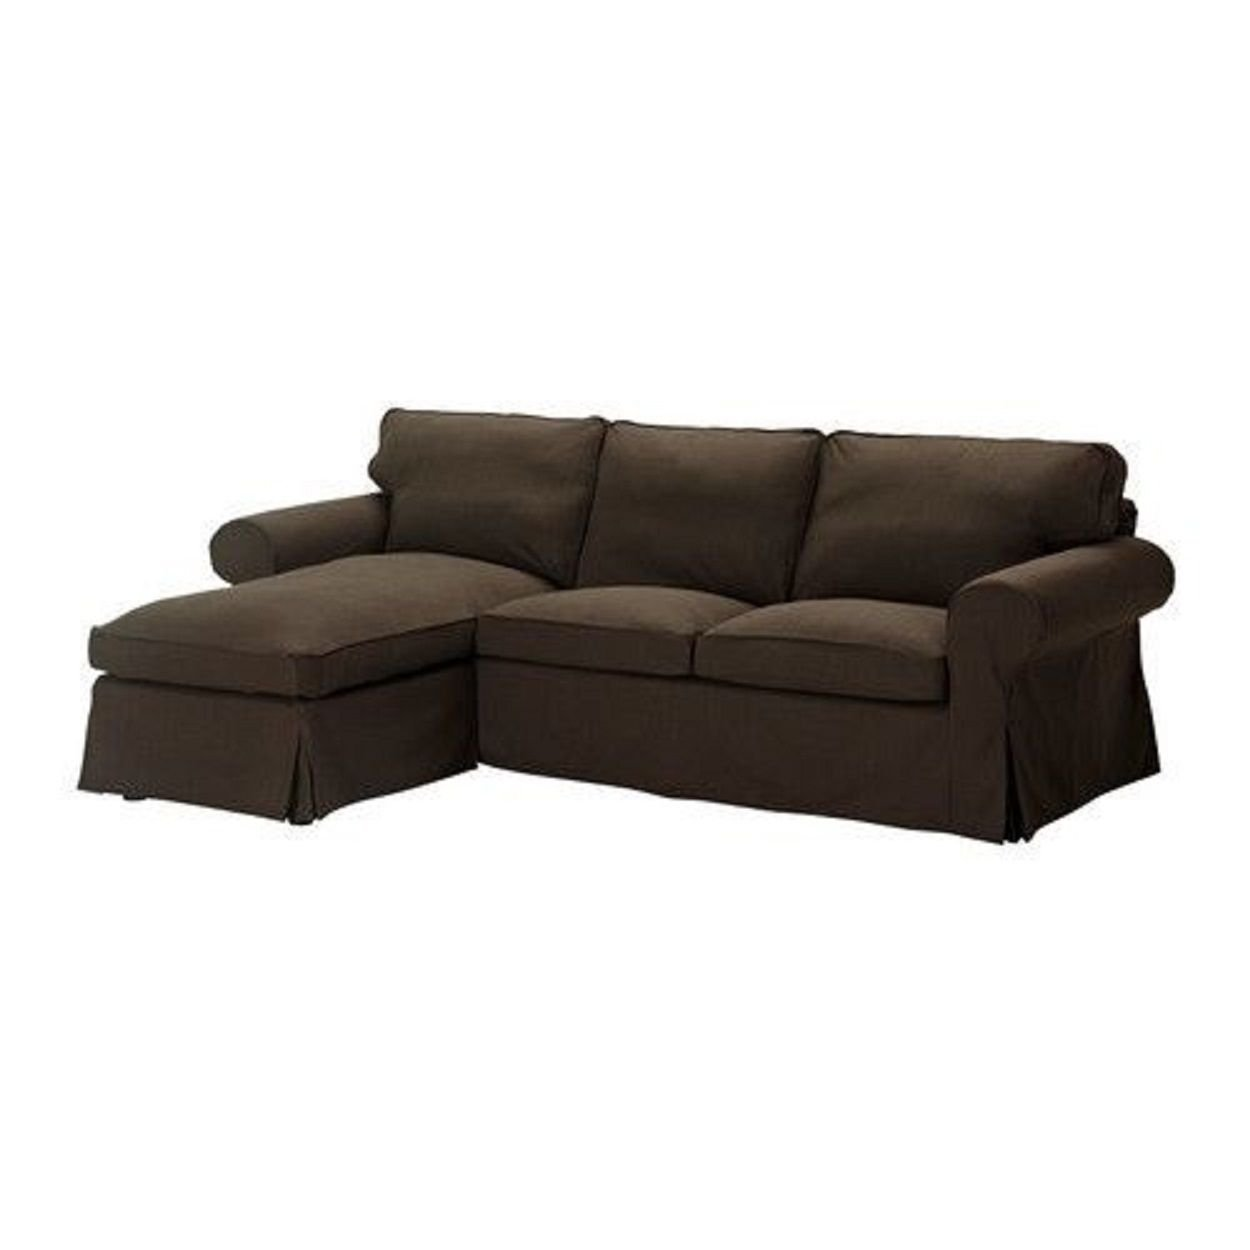 Ikea ektorp 2 seat sofa chaise cover svanby brown for 2 seater lounge with chaise